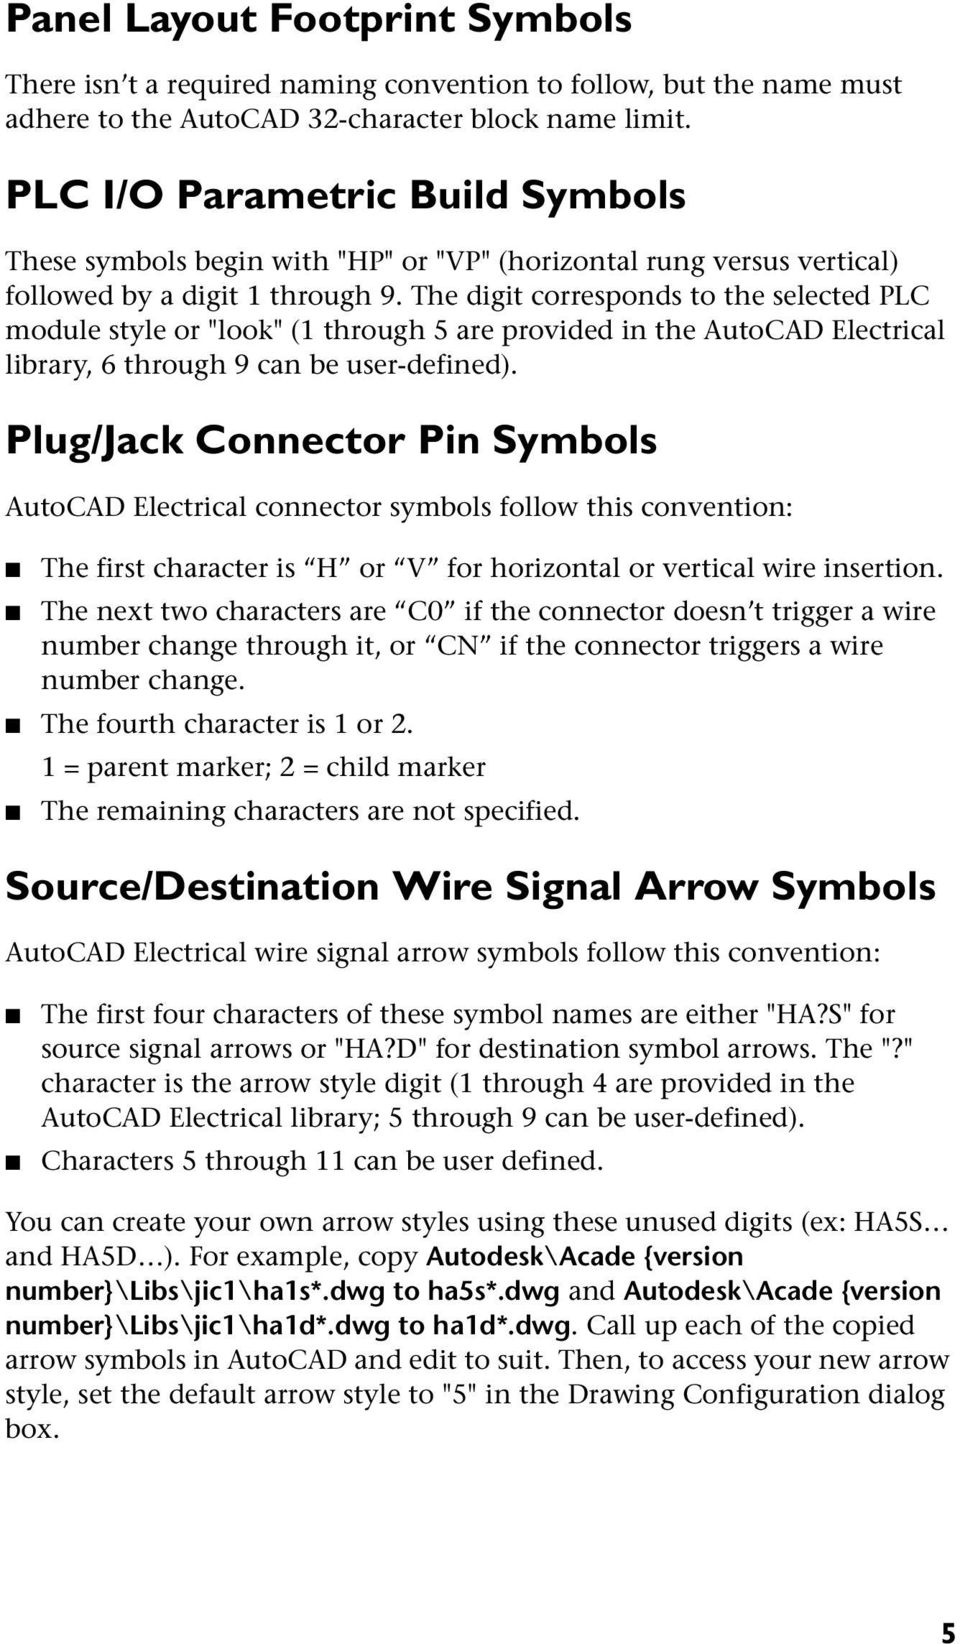 Autocad Electrical Symbol Libraries Pdf